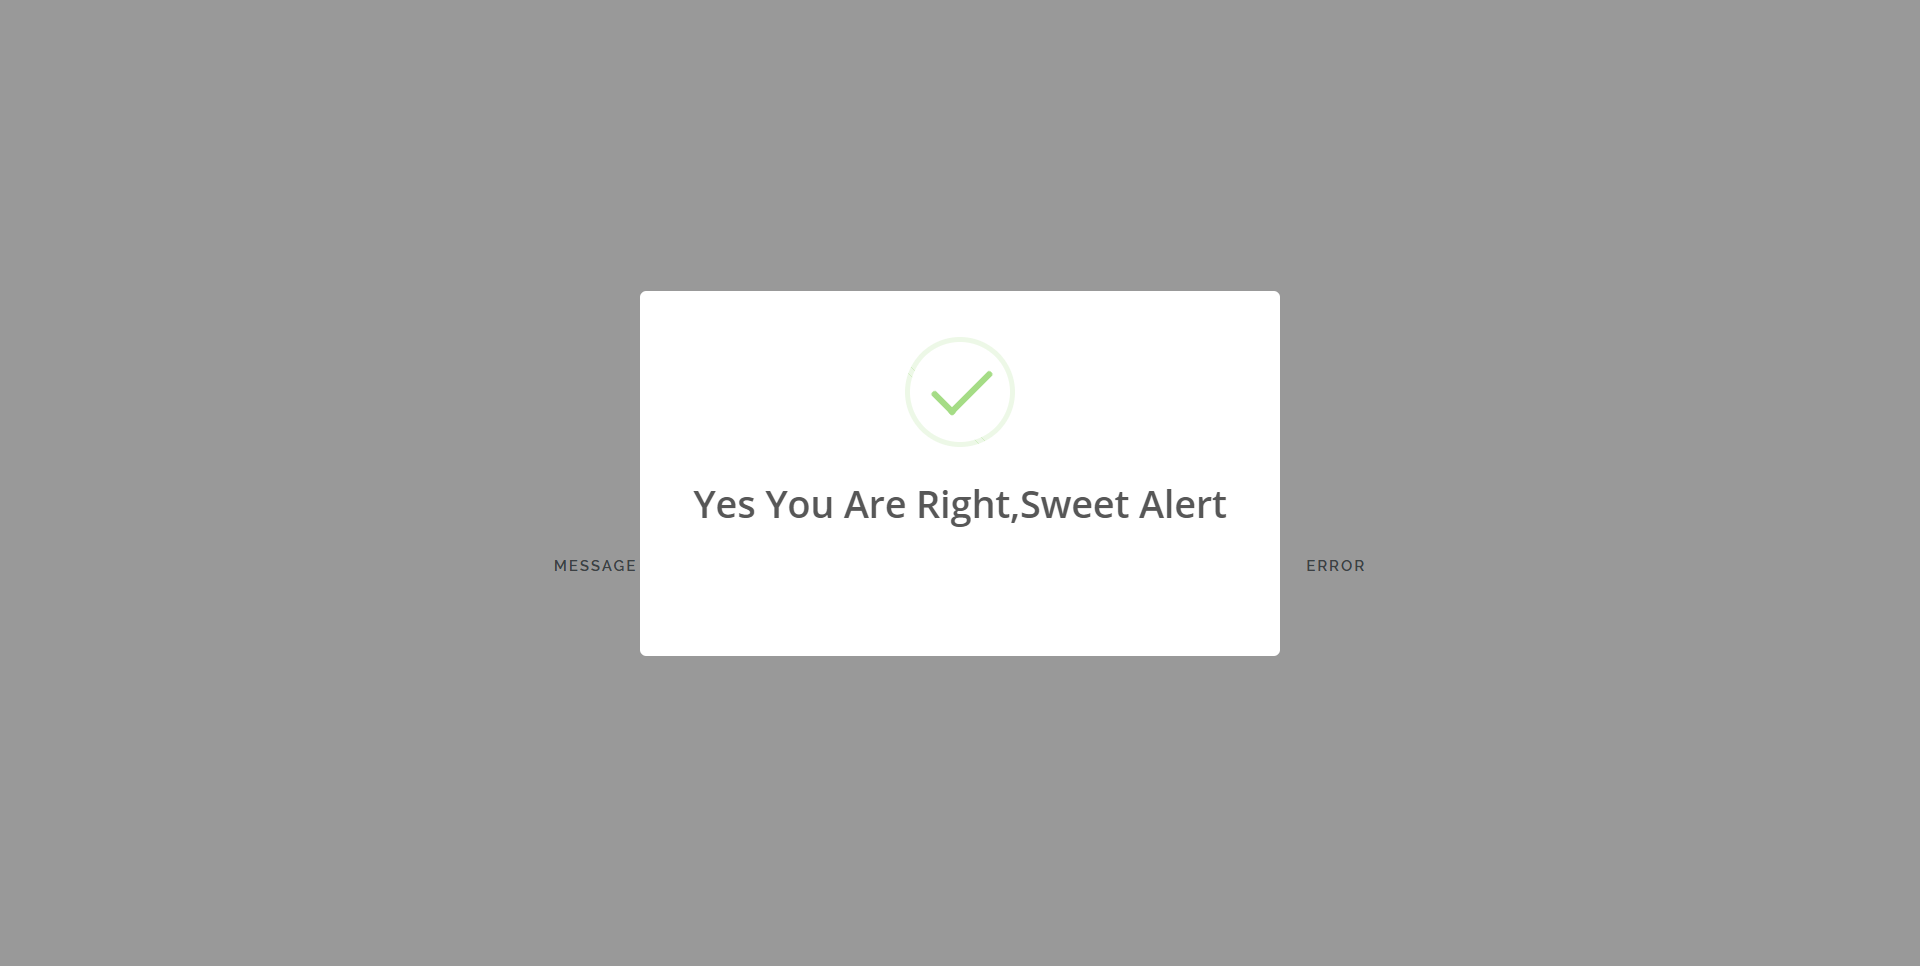 How to Implement Sweet Alert in Laravel Application